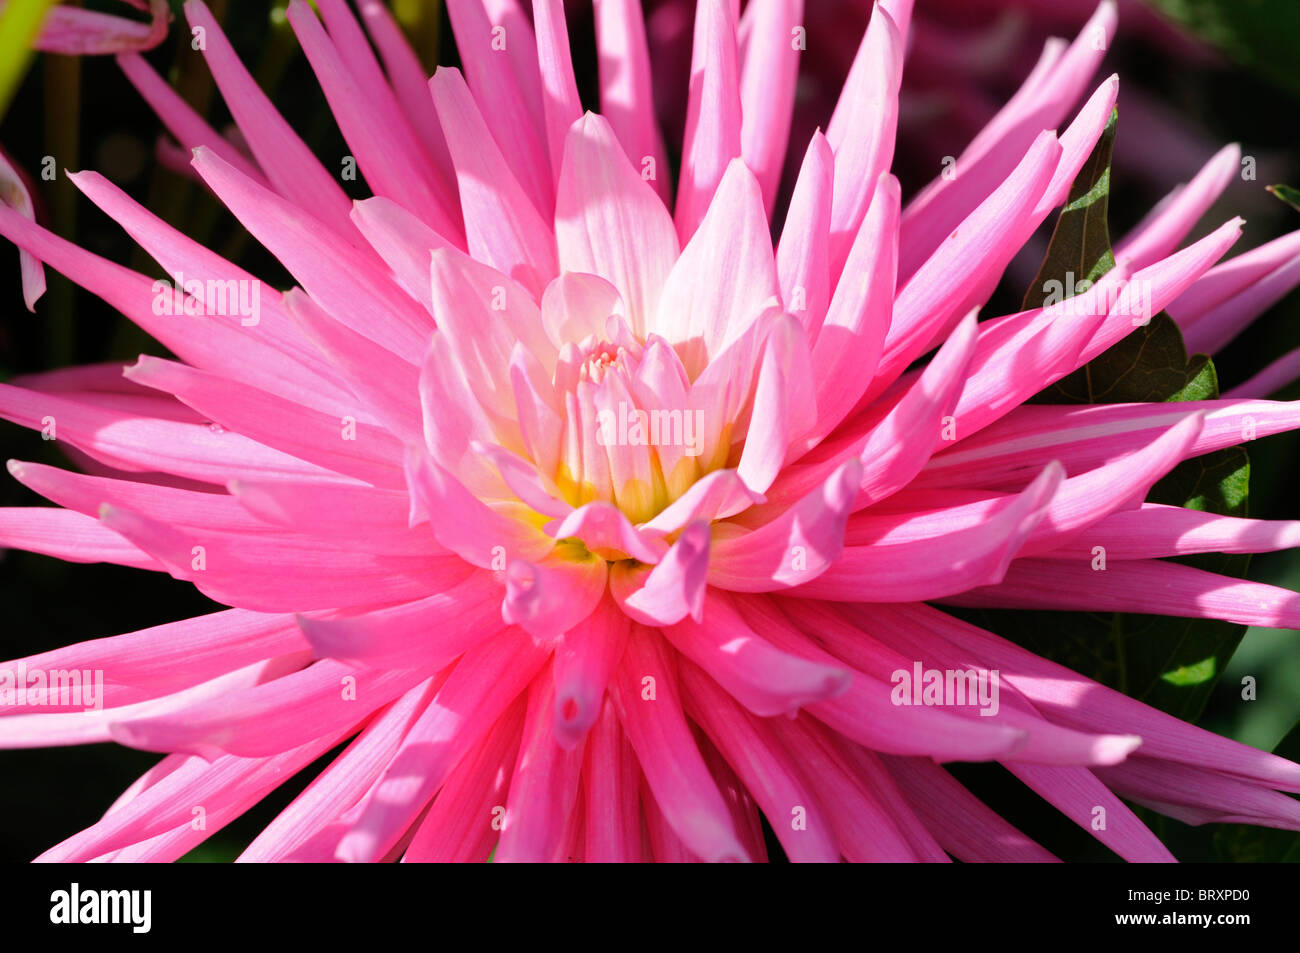 Dahlia rotonde small cactus pink flower bloom blossom type variety dahlia rotonde small cactus pink flower bloom blossom type variety hybrid color colour coloured colored mightylinksfo Images